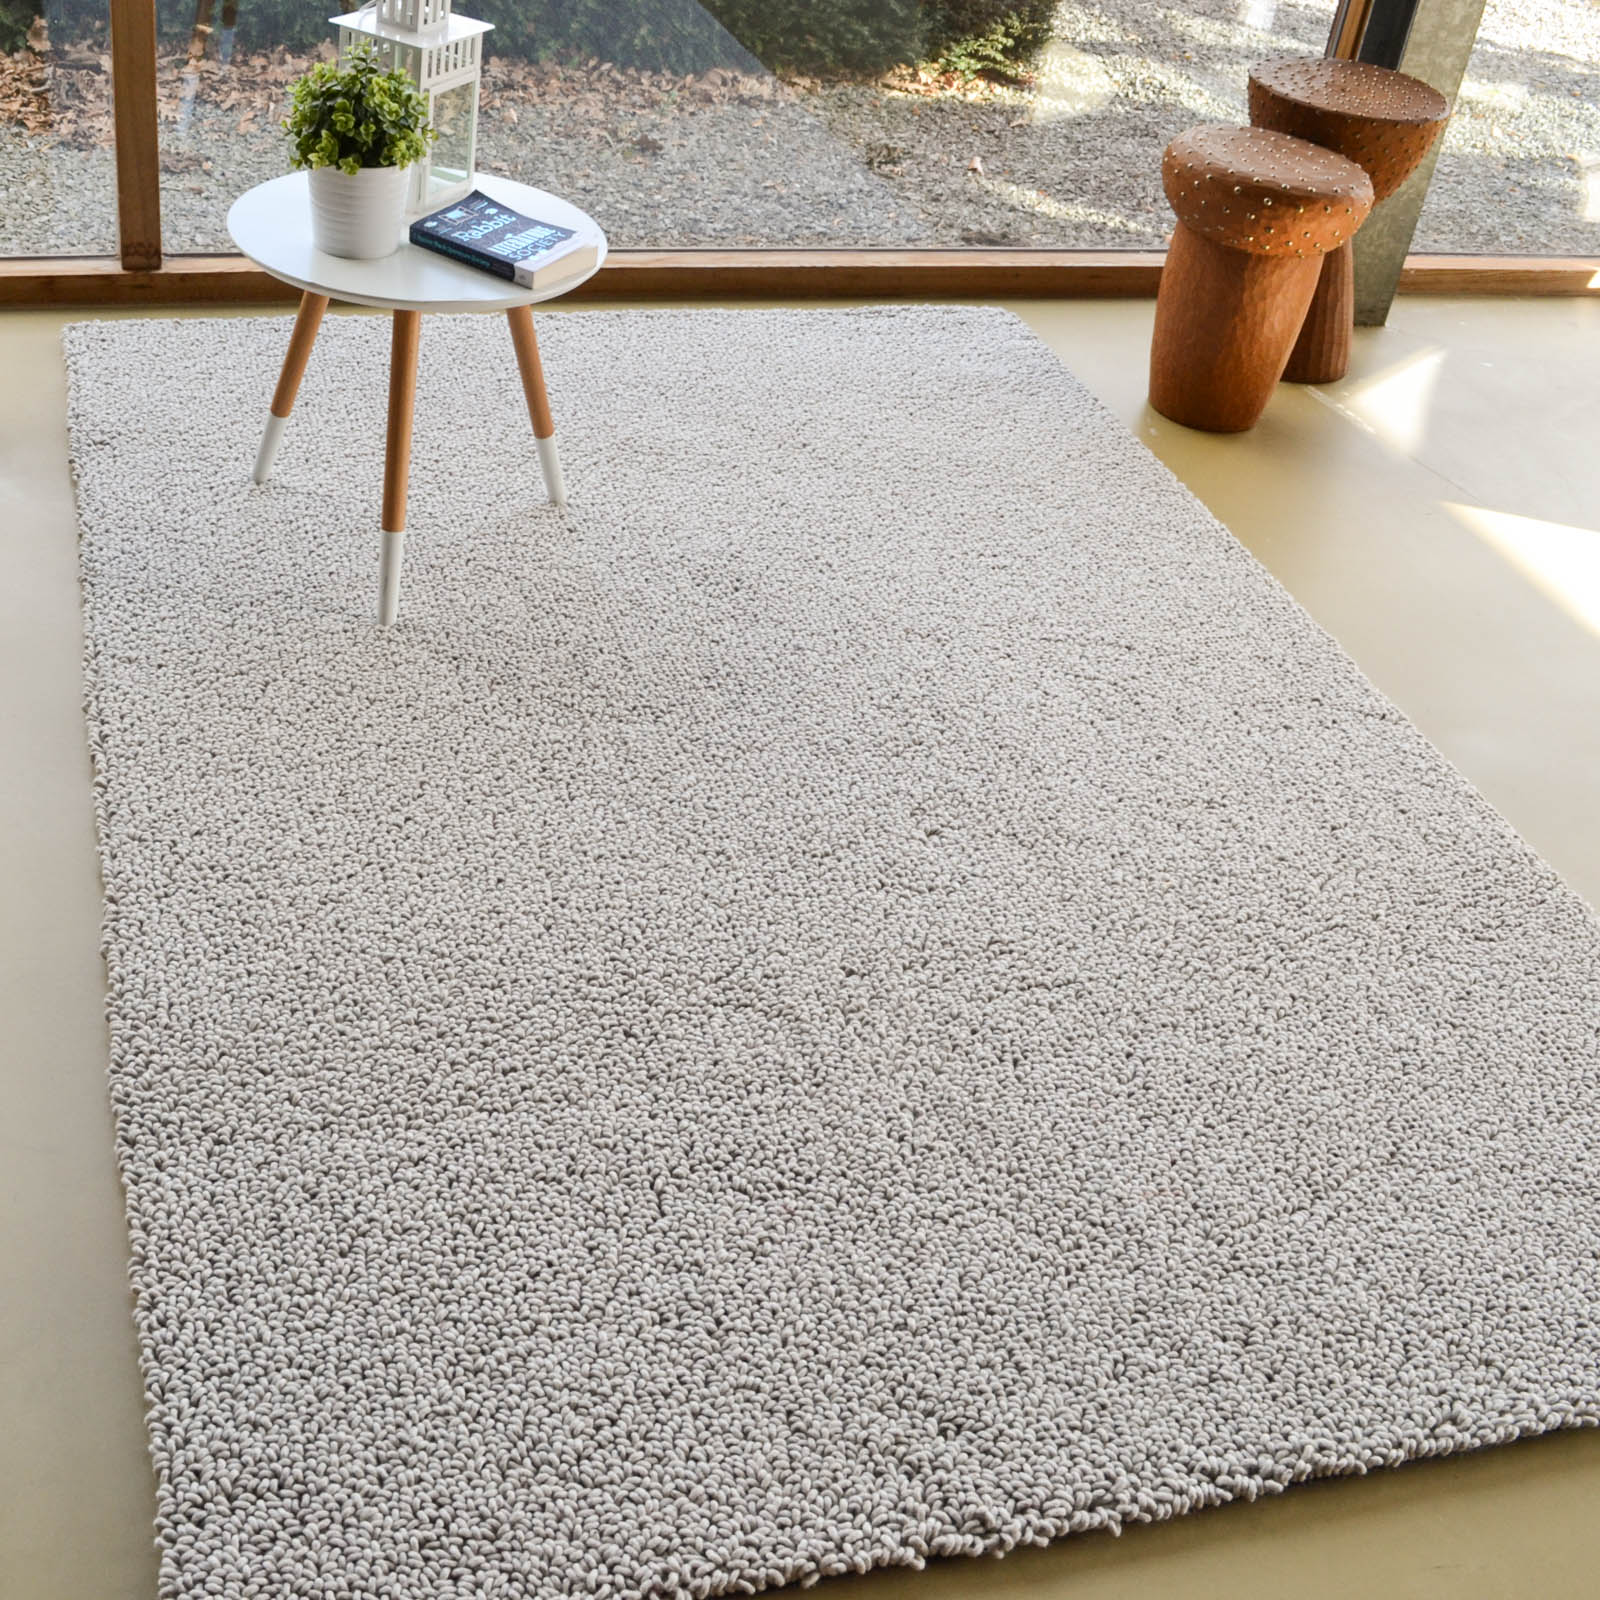 Gravel Boucle Rugs 68101 in Beige by Brink and Campman